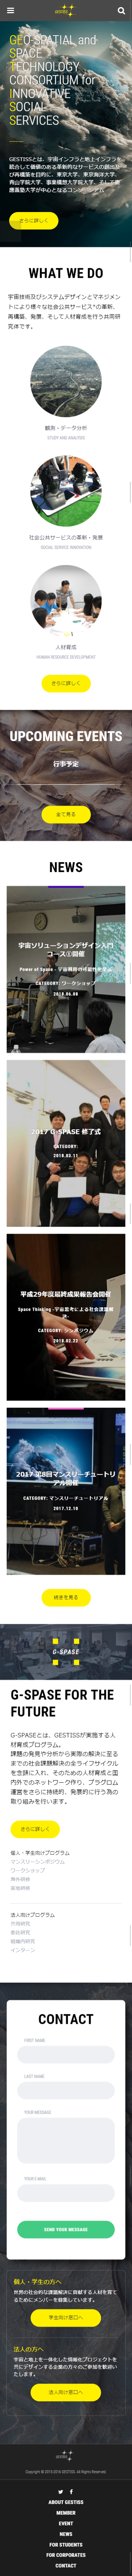 GESTISS 様 GEO - SPATIAL and SPACE TECHNOLOGY CONSORTIUM for INNOVATIVE SOCIAL SERVICES